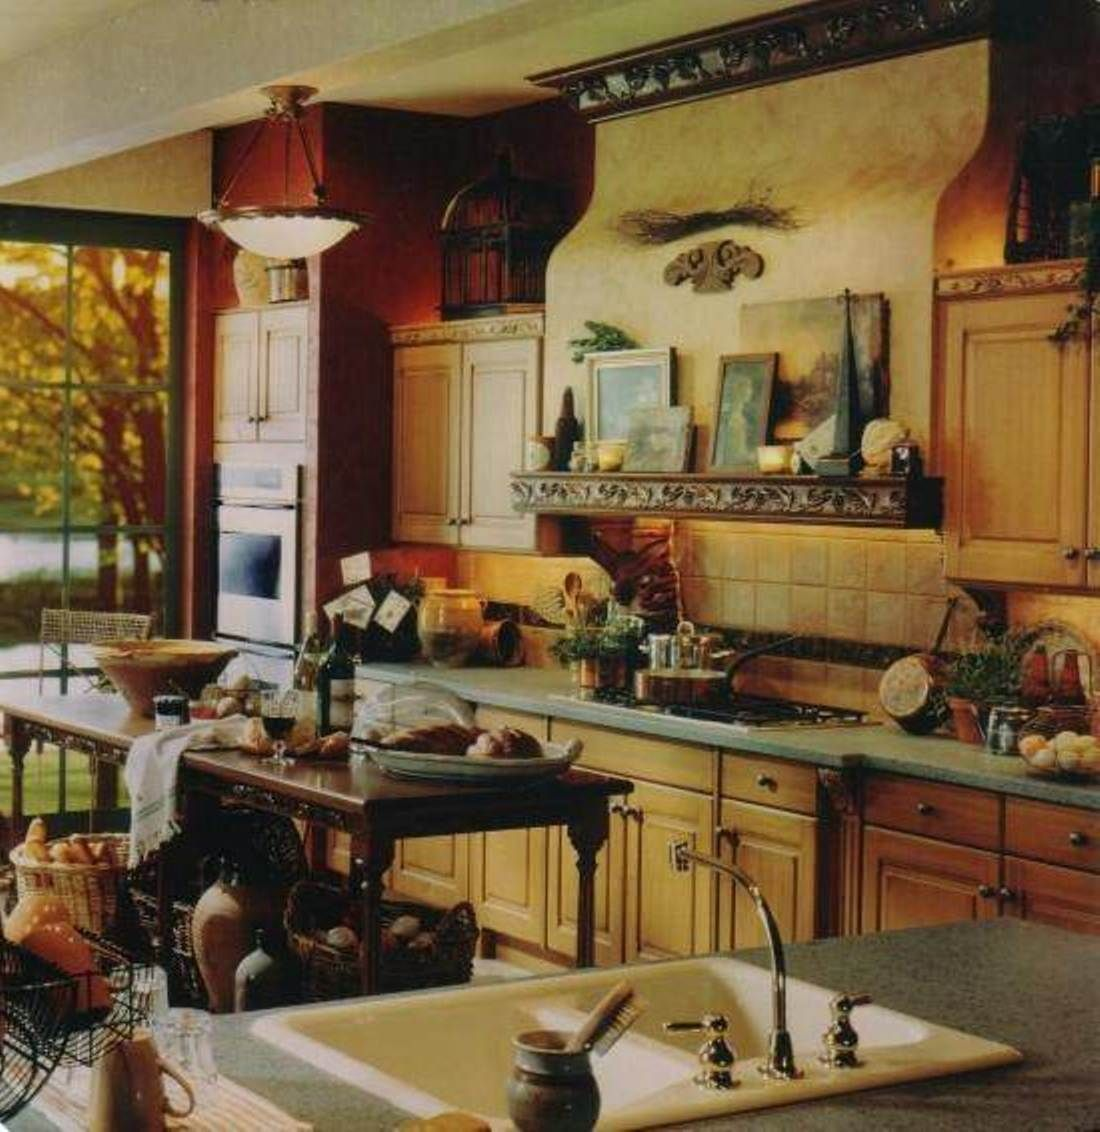 Italian Country Kitchen Images Tabetara